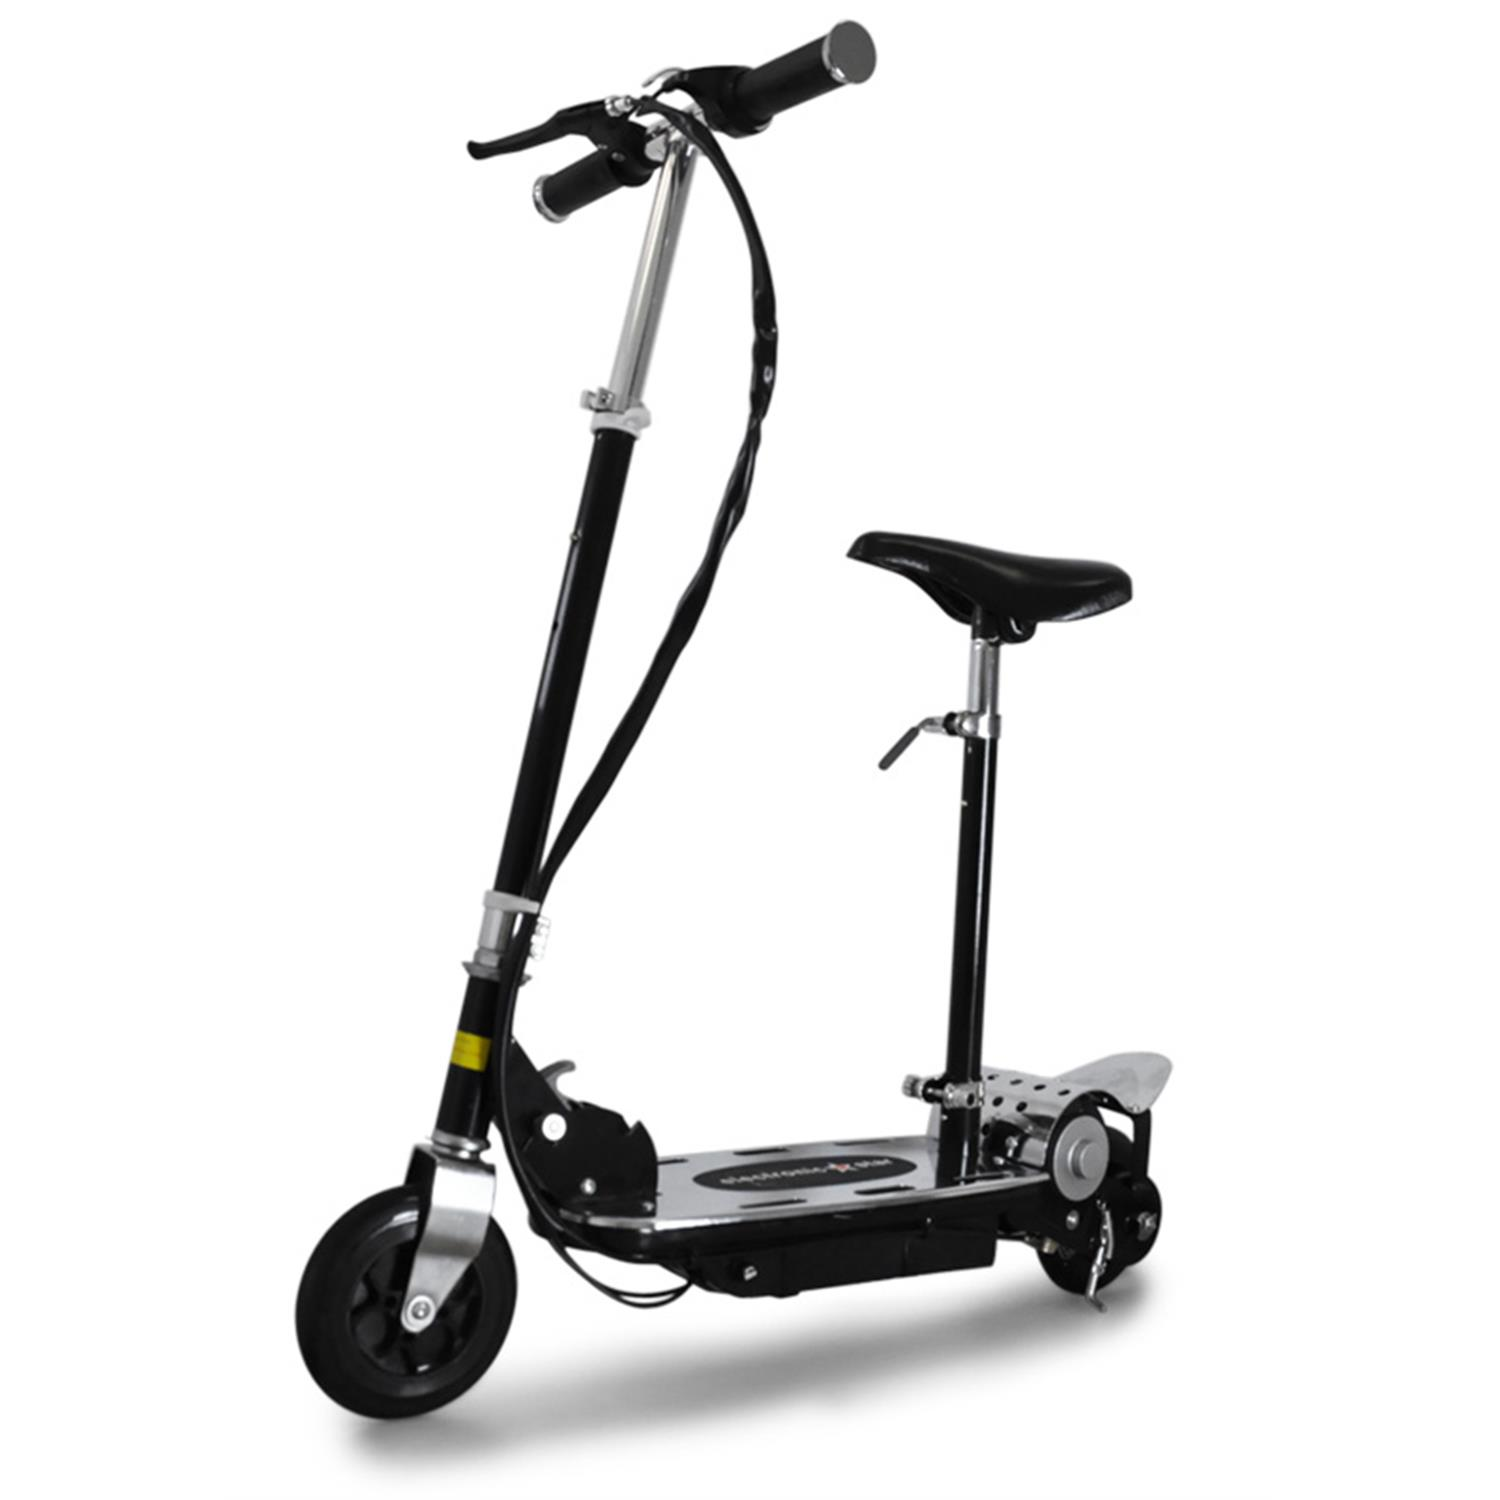 New Fun Electric Scooter E Scooter Battery Powered 16km H